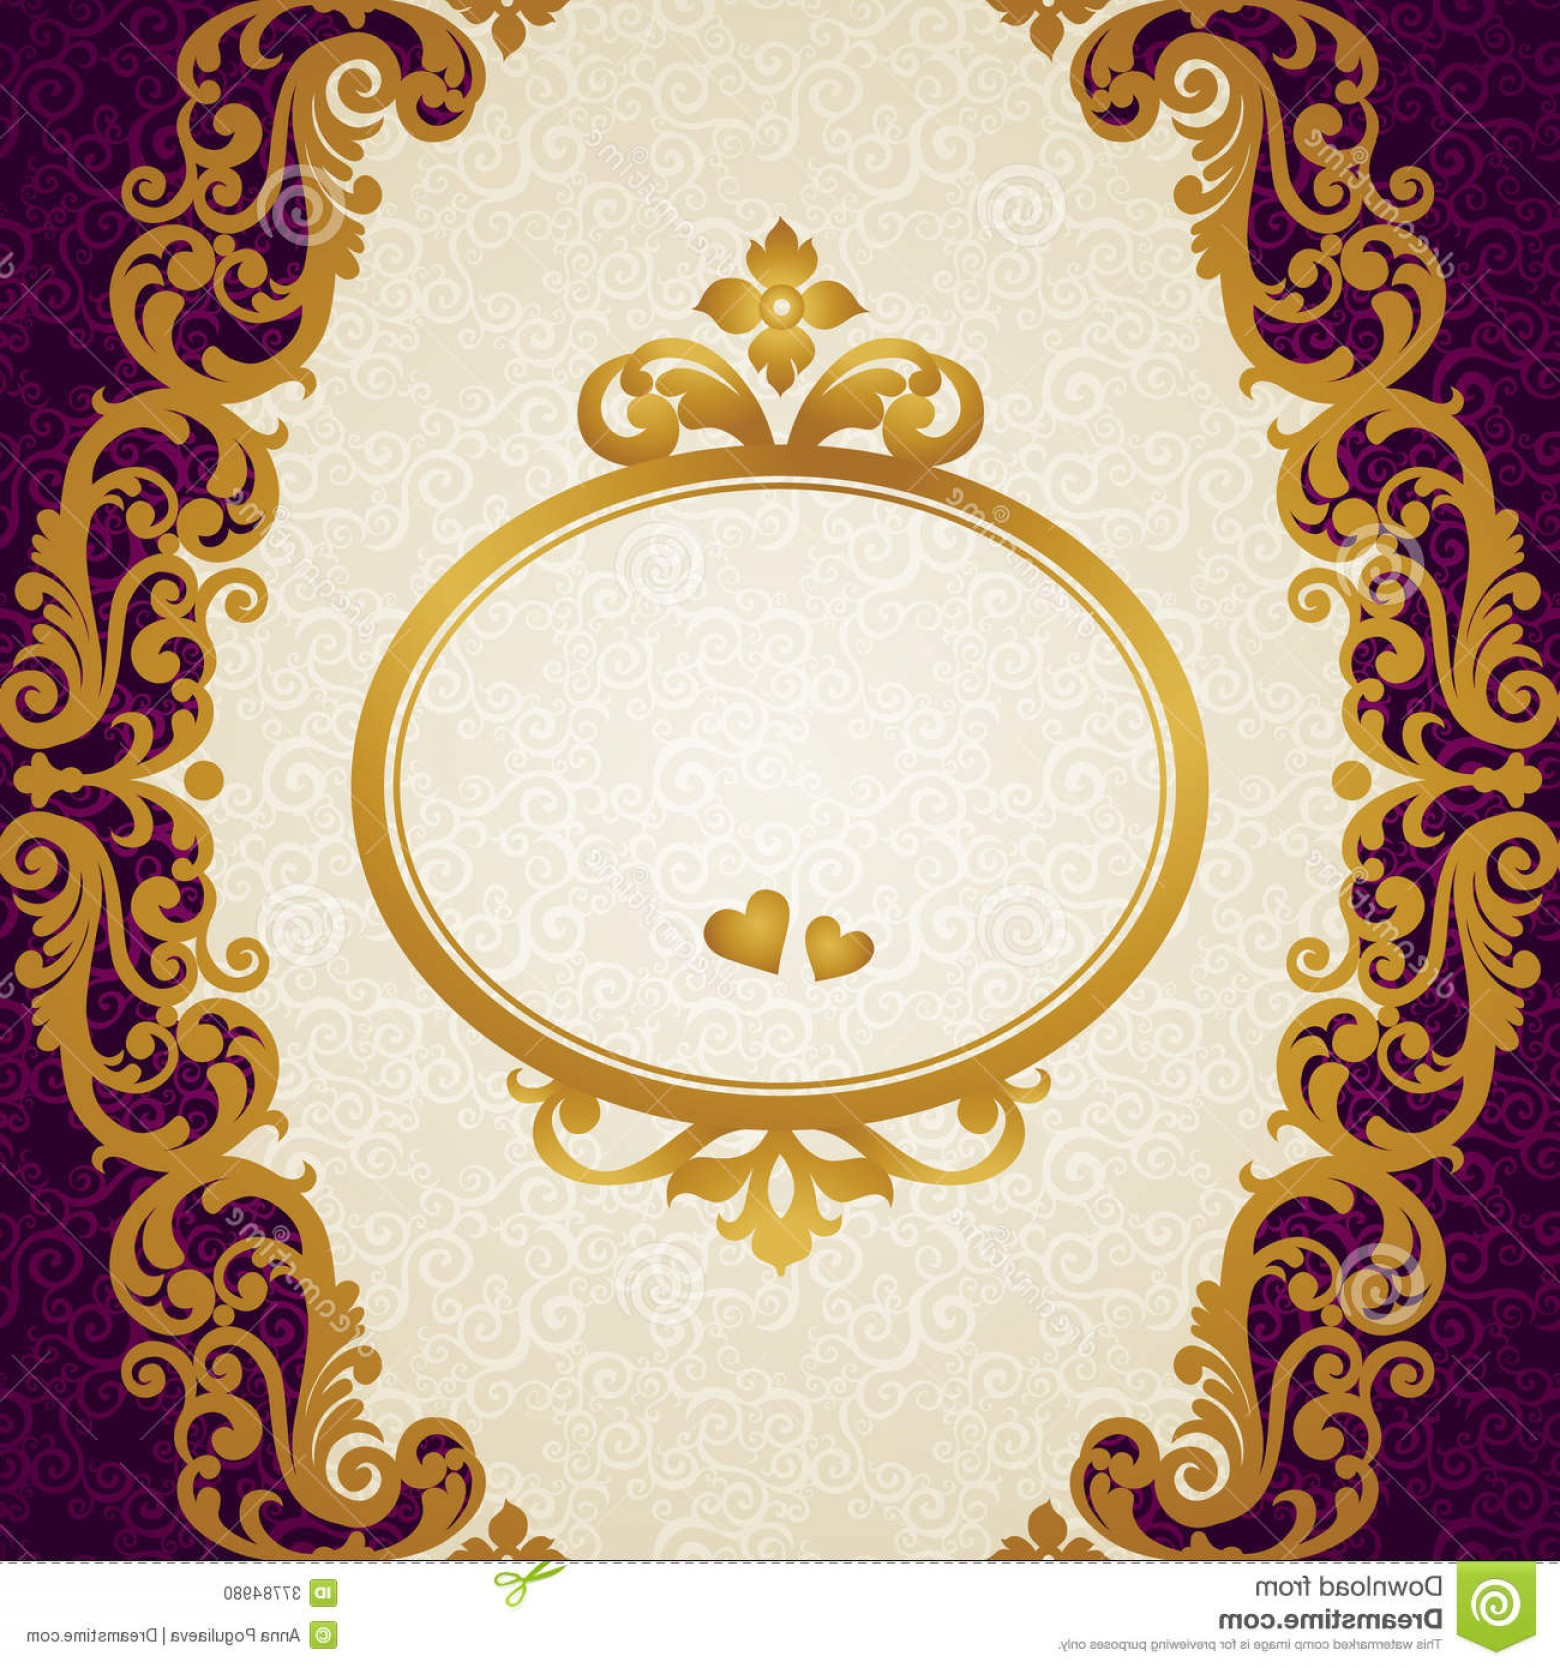 Victorian Style Frame Vector: Stock Photo Vector Baroque Endless Border Victorian Style Element Design Place Your Text Can Be Used Decorating Wedding Image